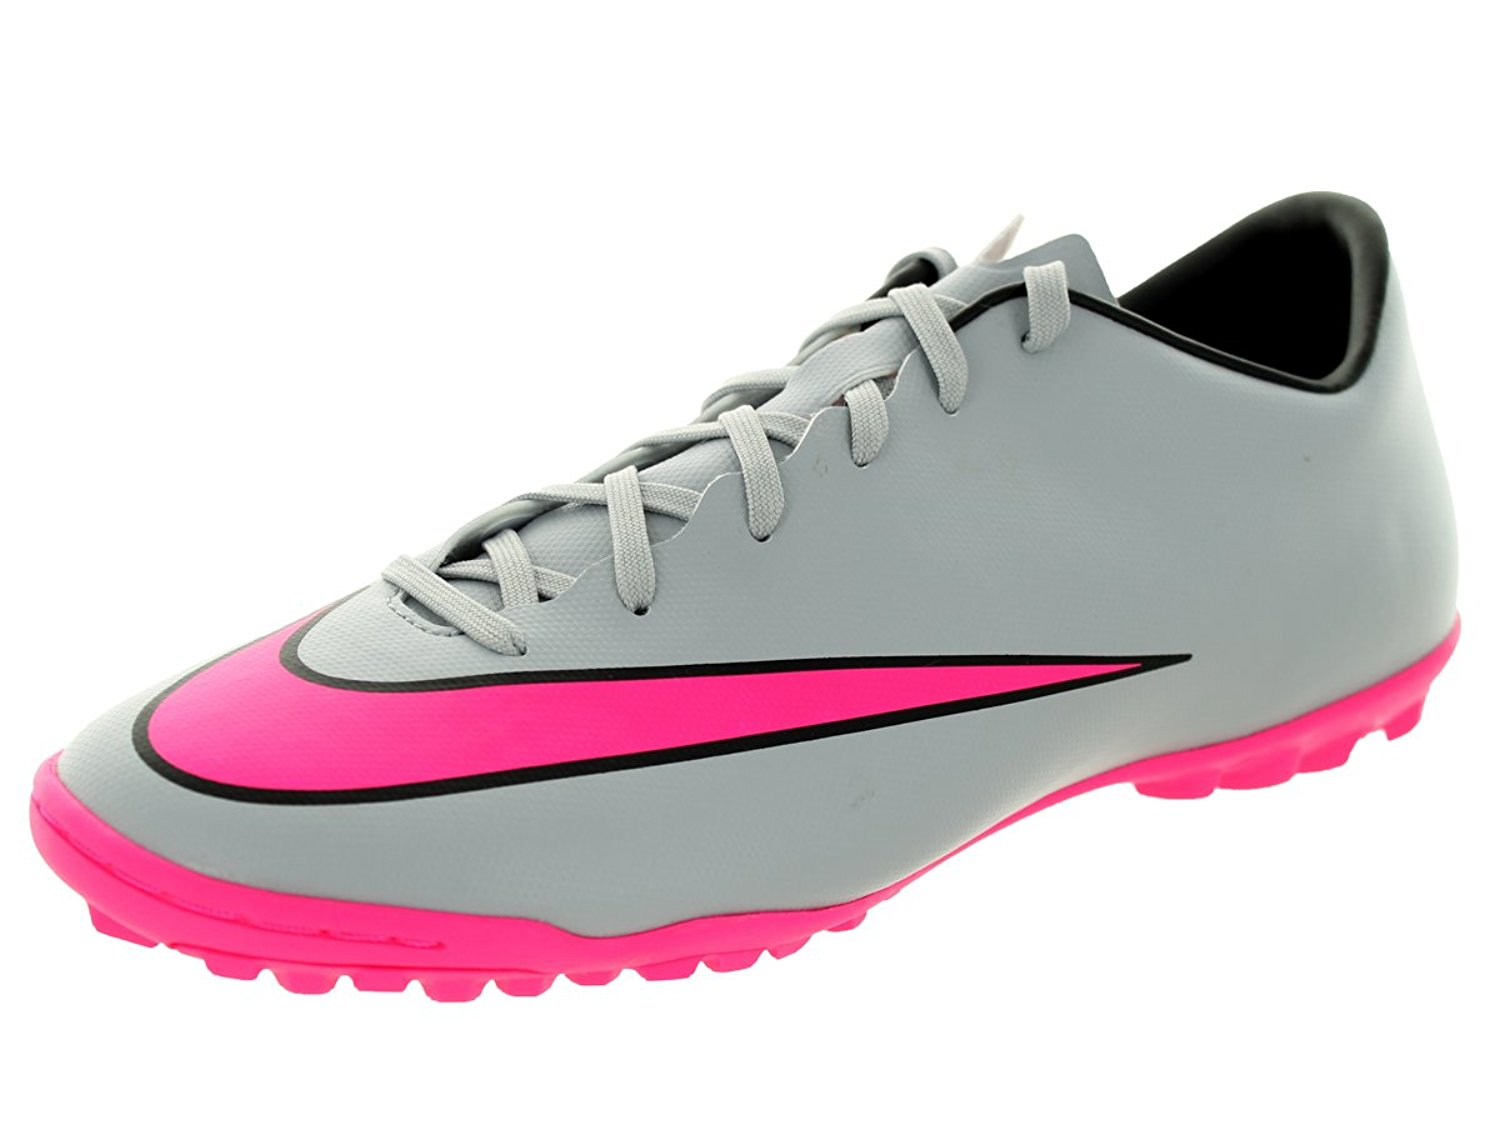 634d46a4648 Get Quotations · Nike Mercurial Victory V TF Mens Soccer Shoe